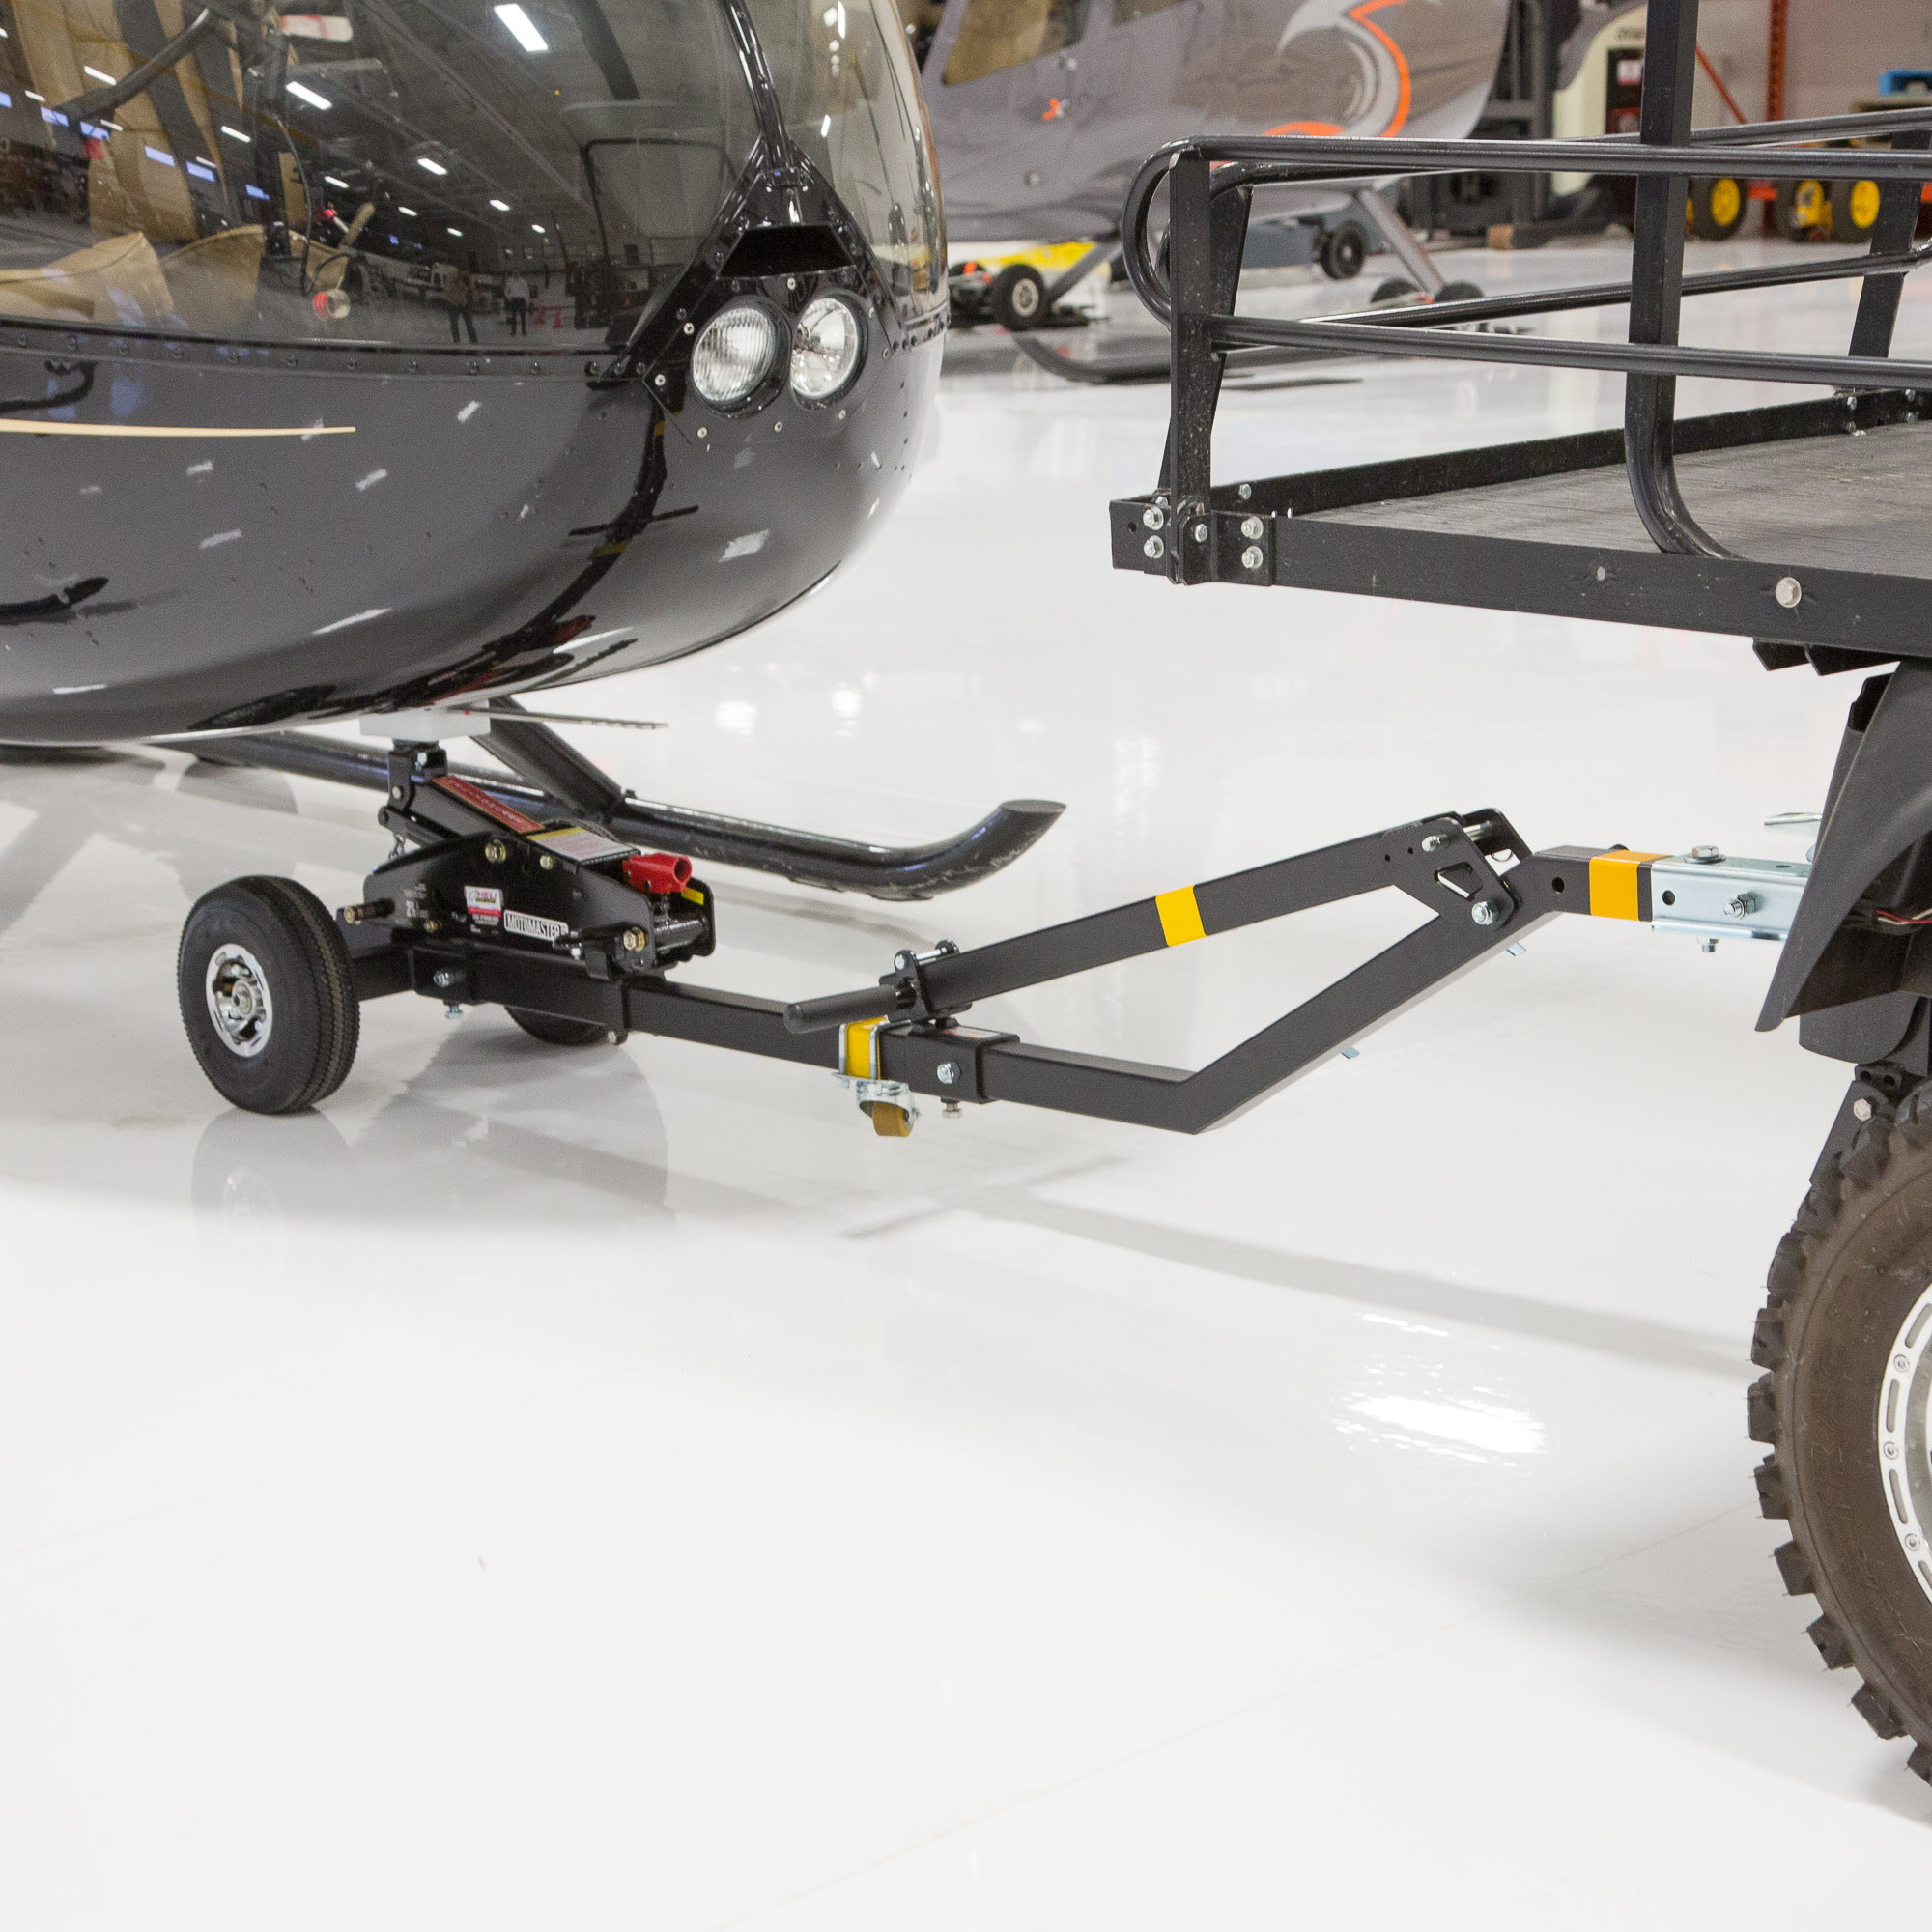 Towbar For Robinson Helicopters Helitowcart Shop